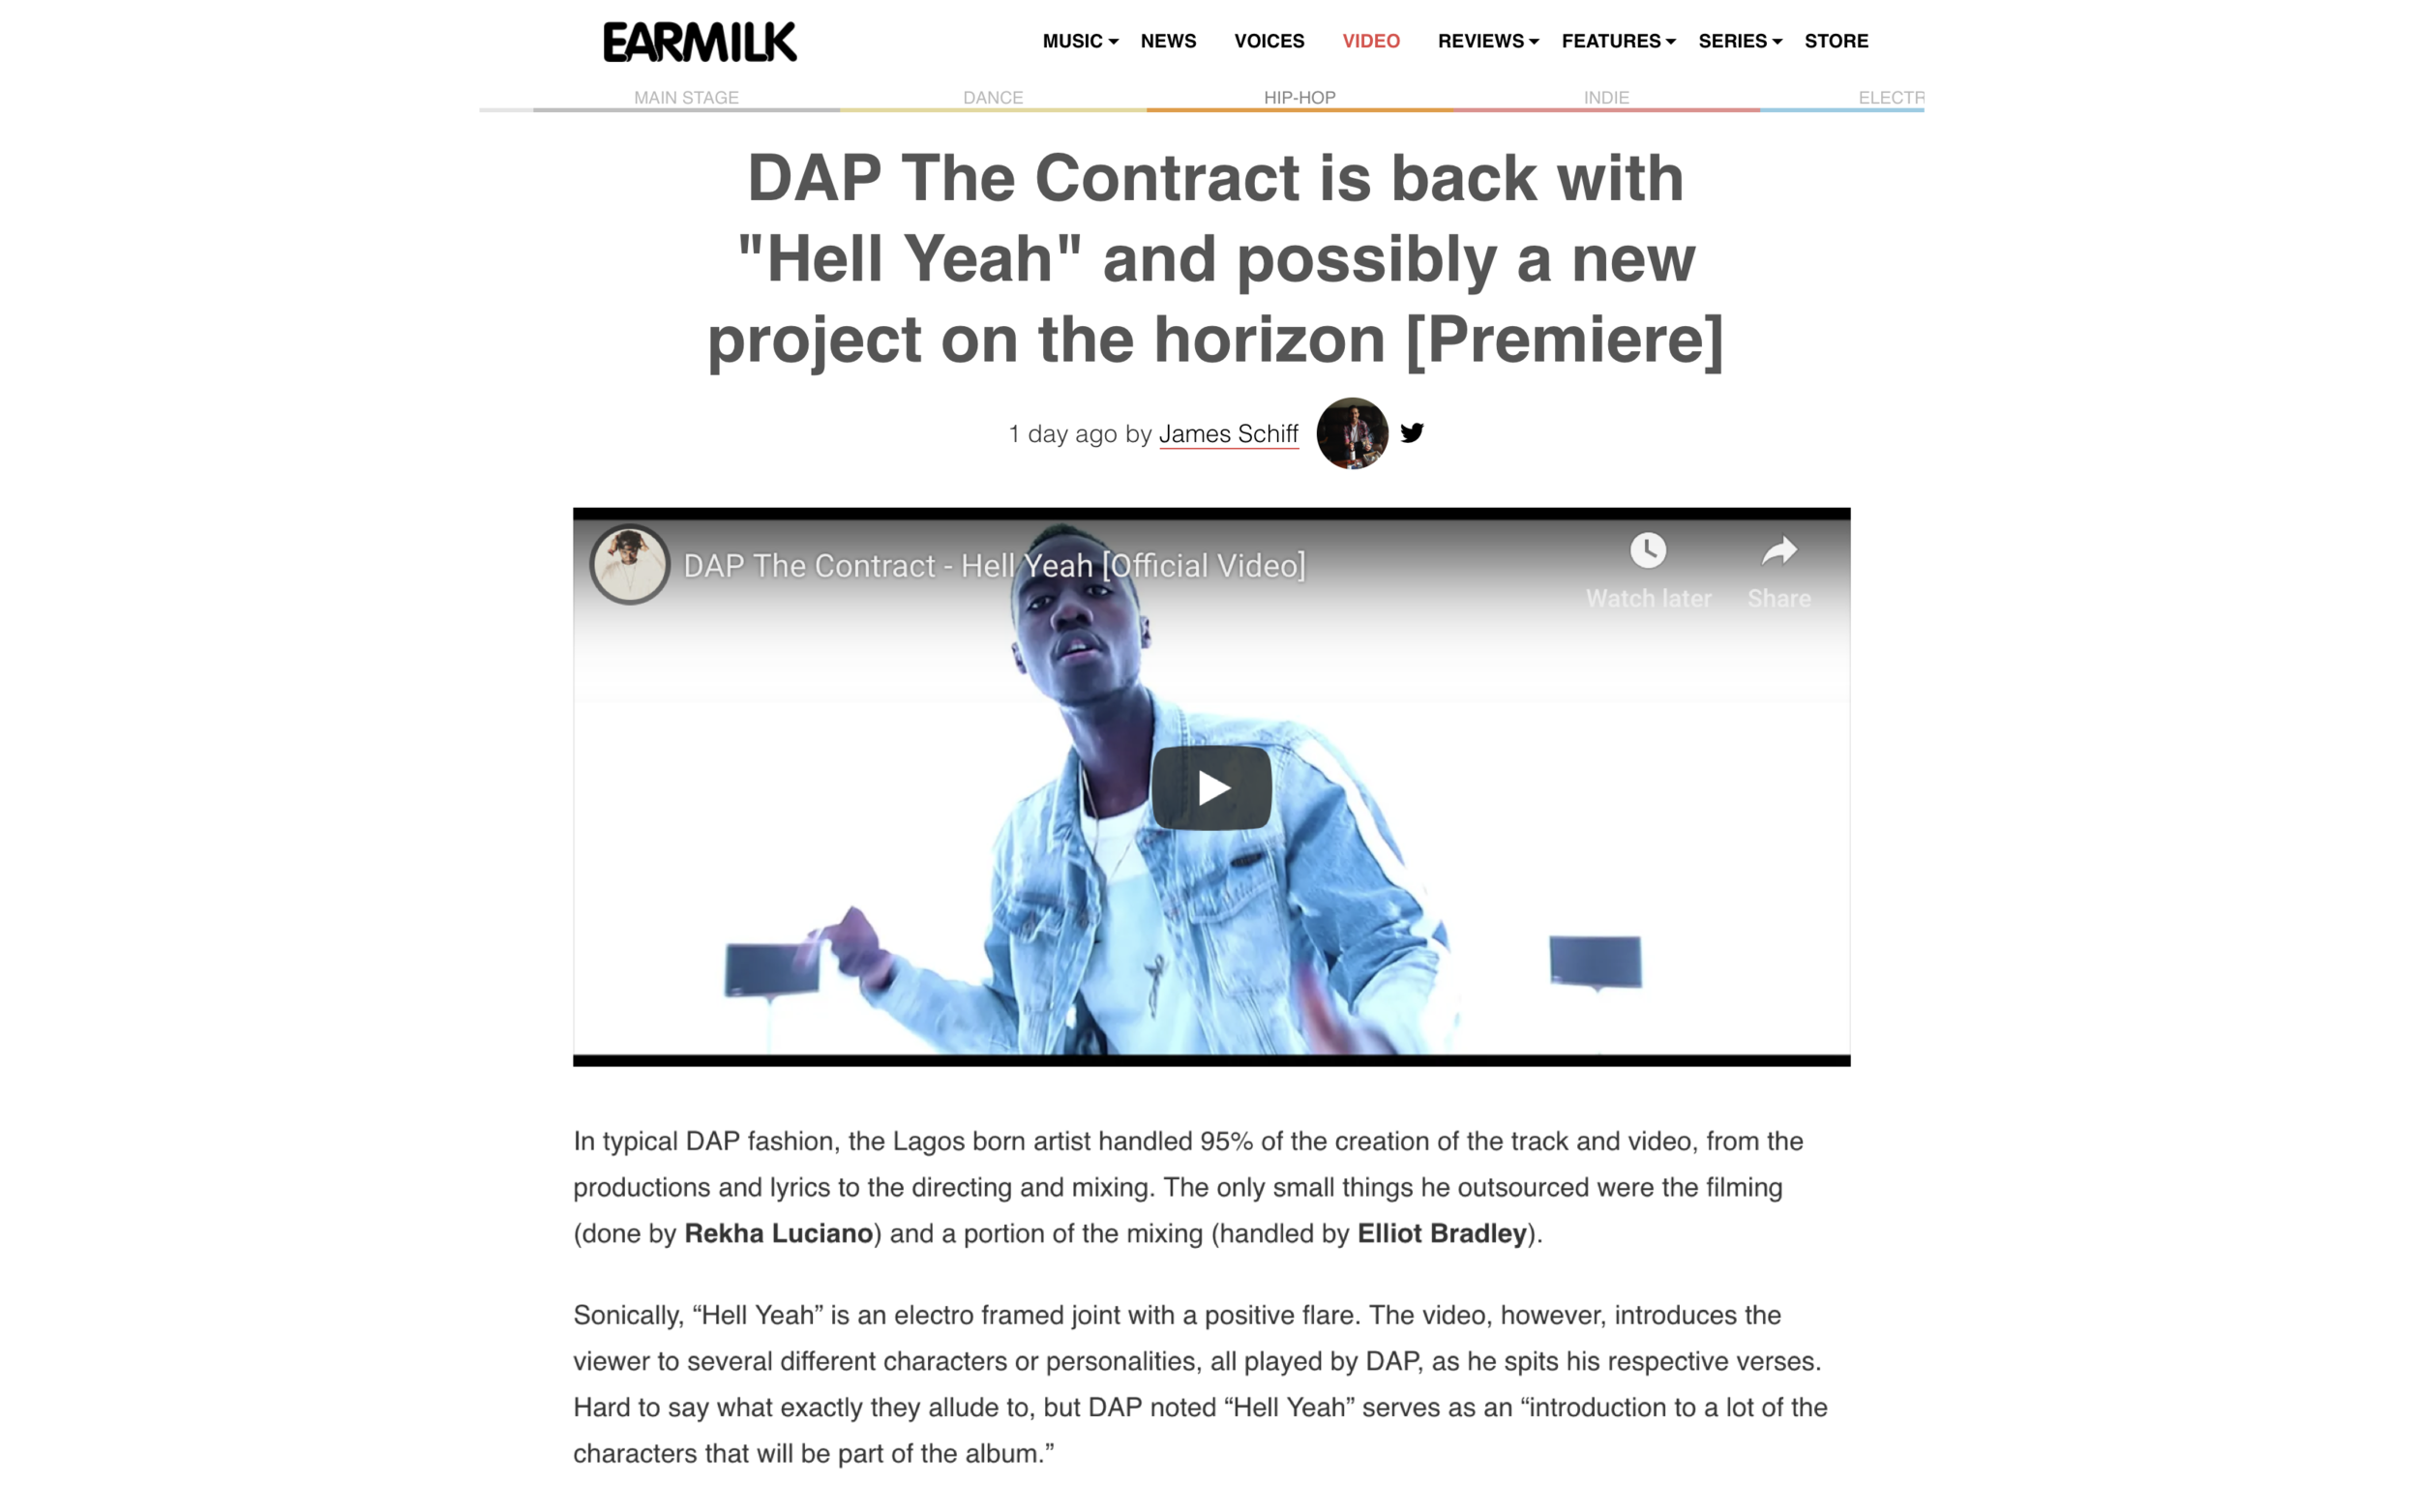 https://earmilk.com/2018/10/17/dap-the-contract-is-back-with-hell-yeah-and-possibly-a-new-project-on-the-horizon-premiere/?utm_source=t.co&utm_medium=referral